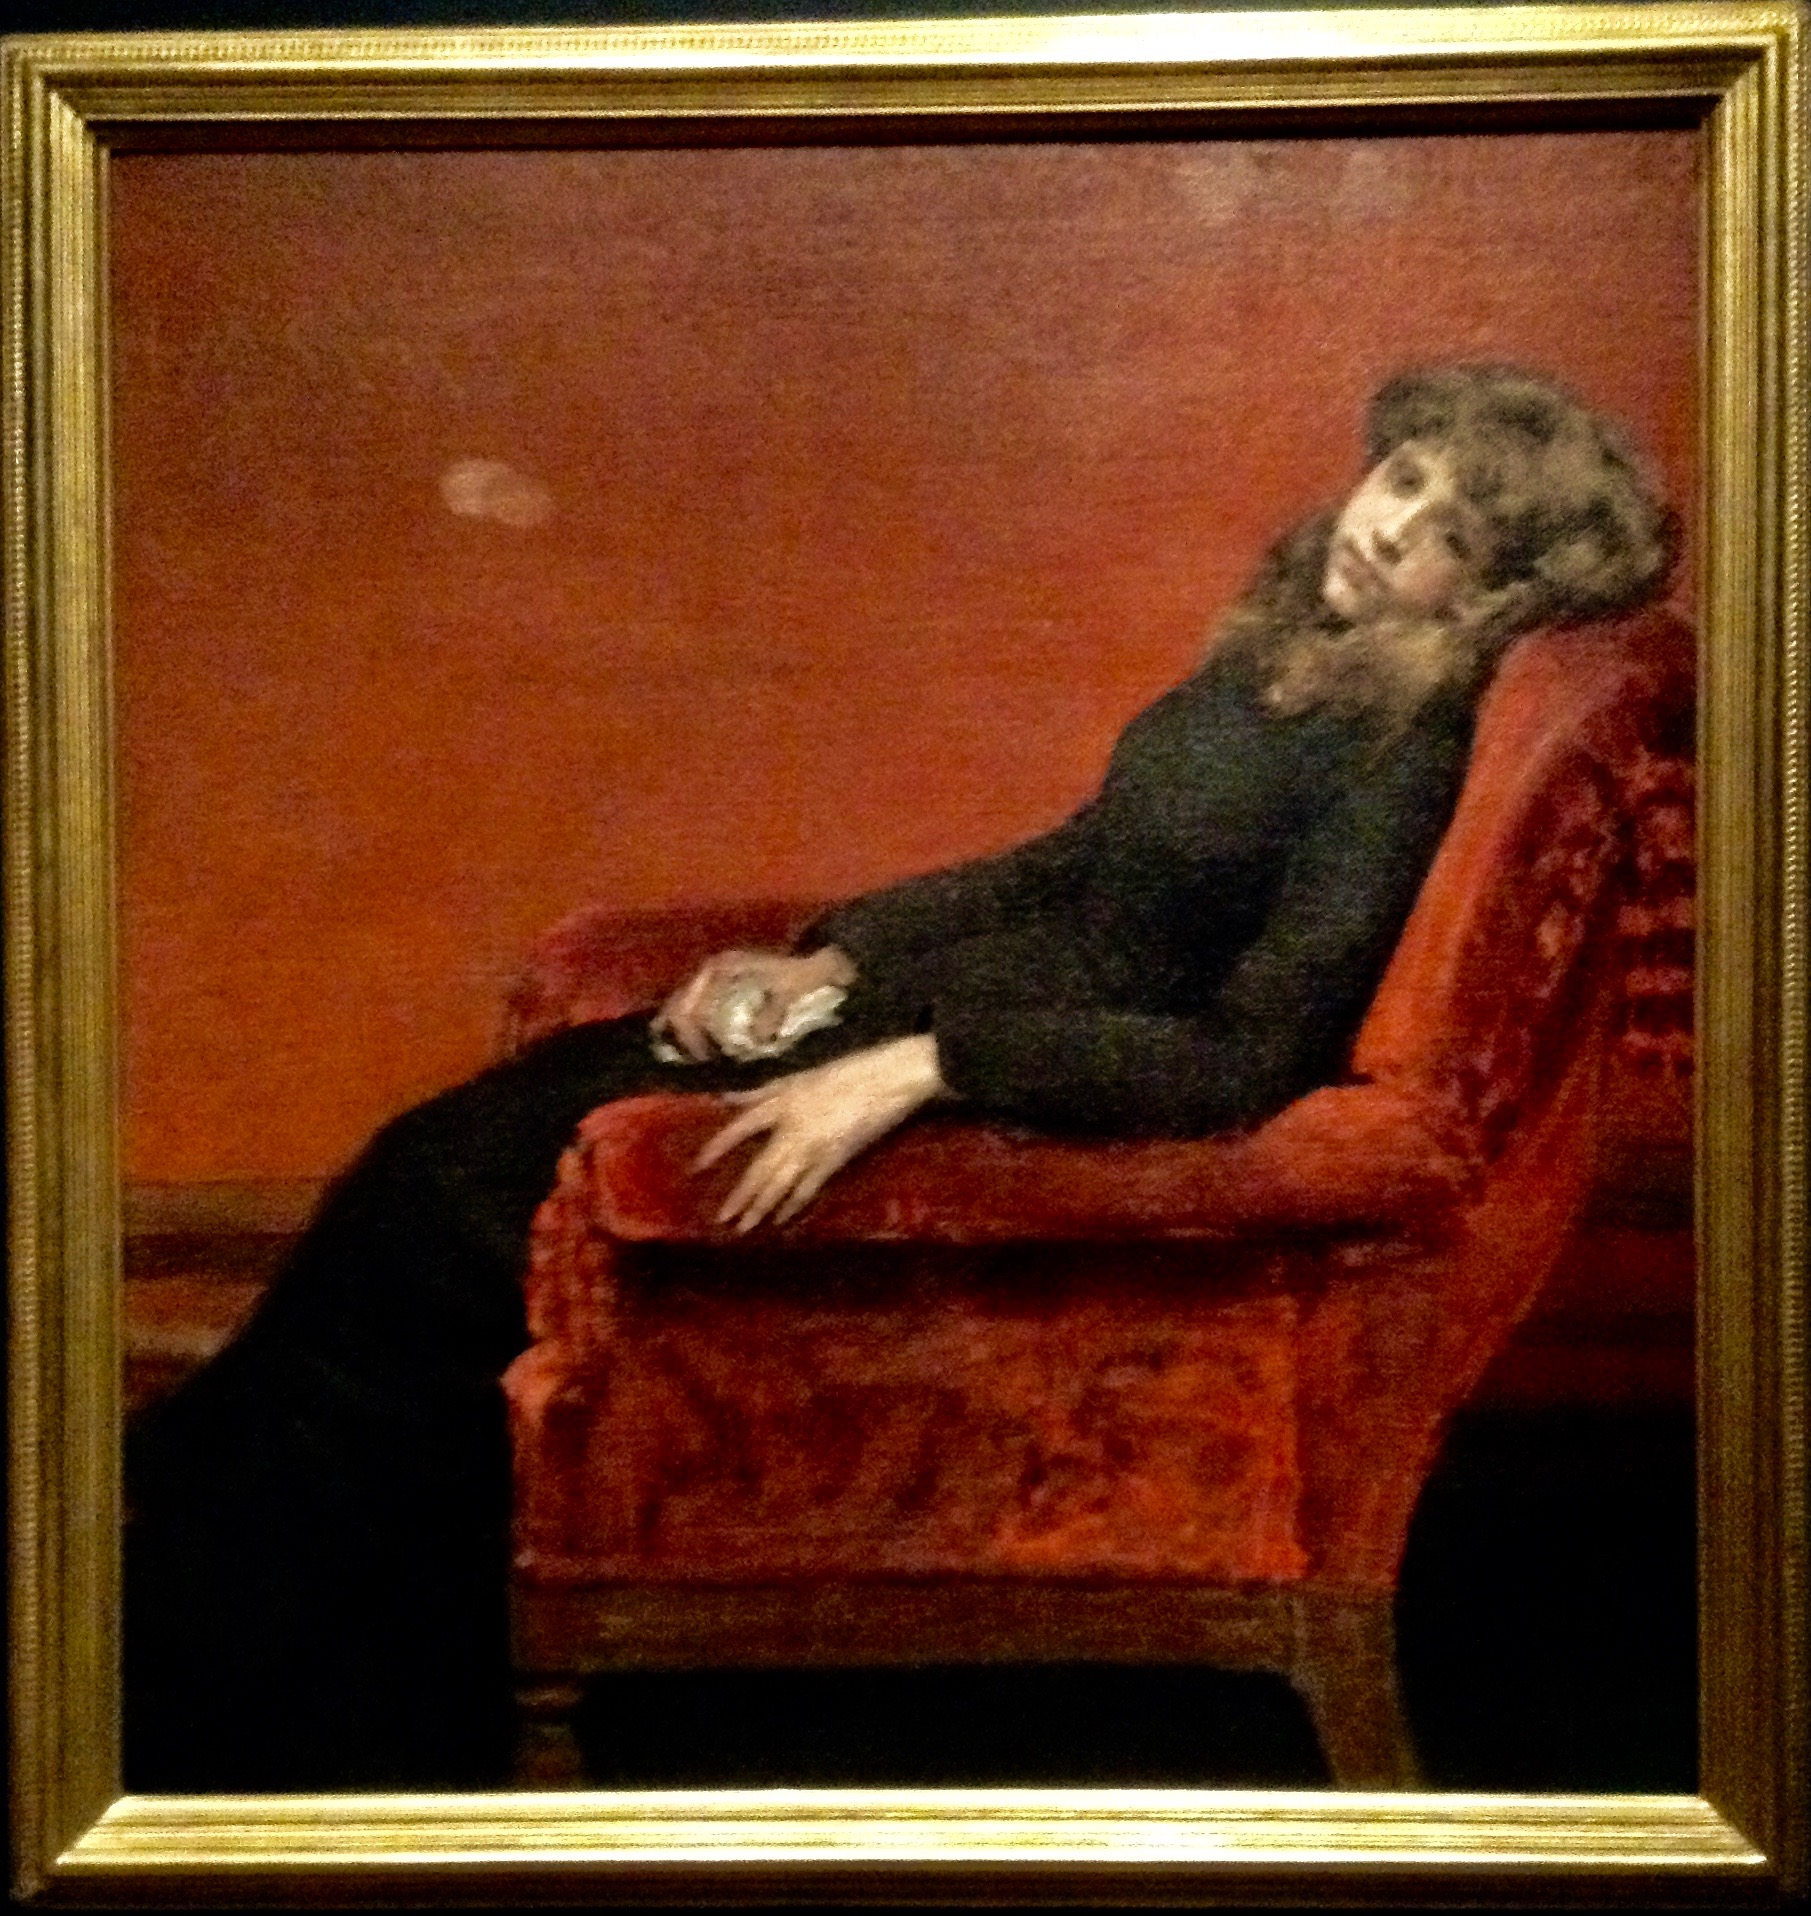 Portrait (The Young Orphan, An Idle Moment), 1884, by William Merit Chase. CHLOE BARBER/SAGAMORE STAFF